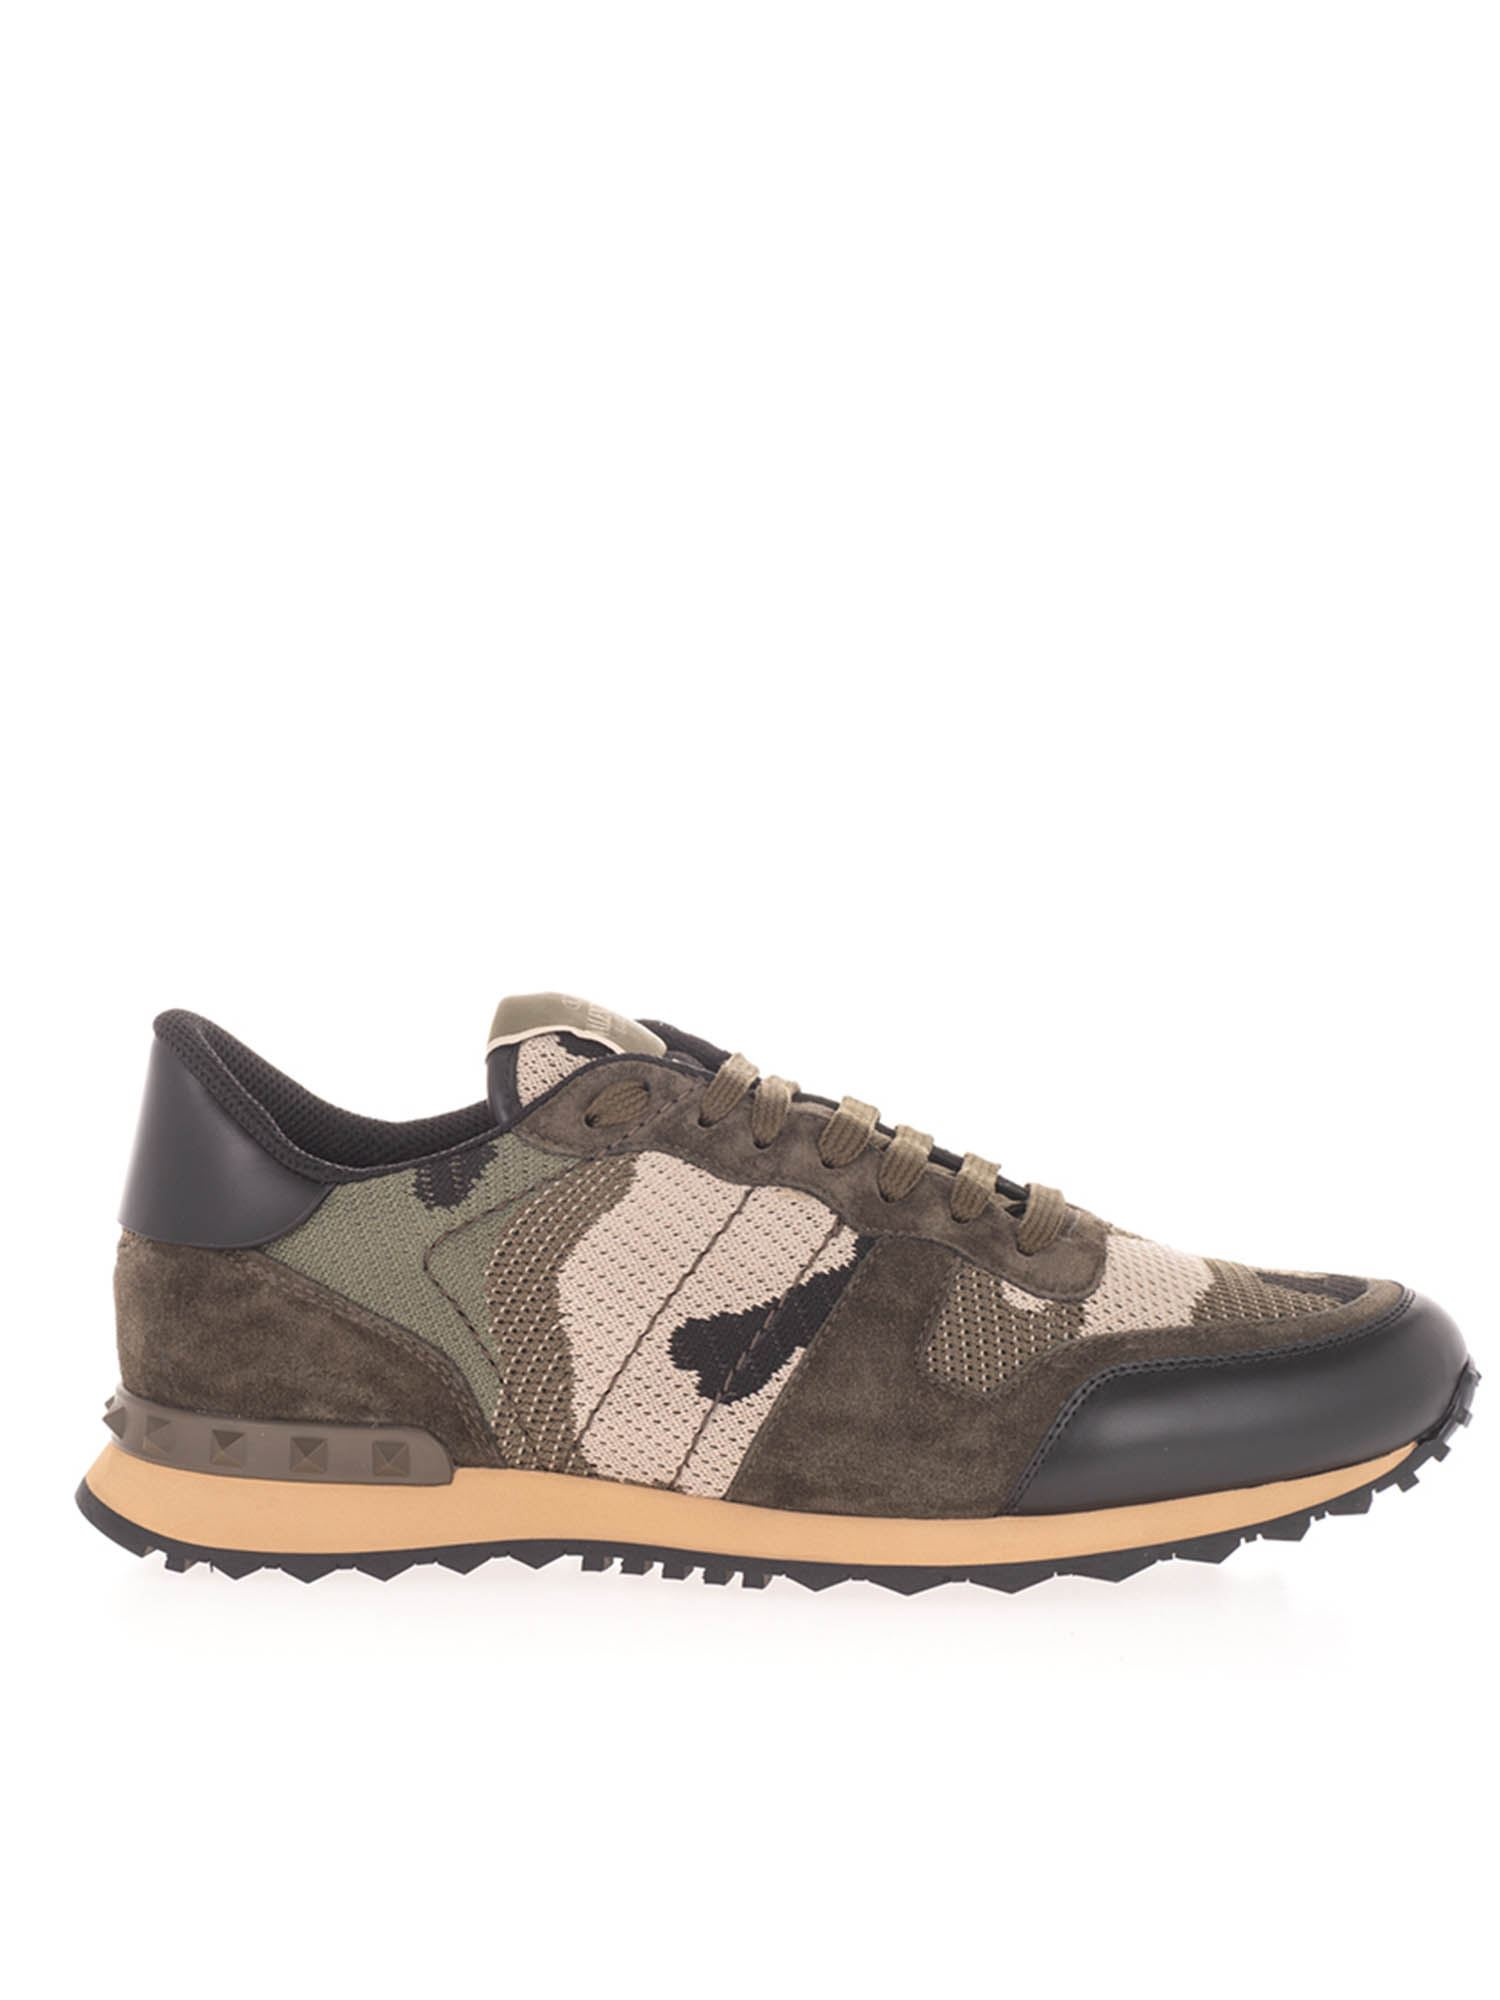 Valentino ROCKRUNNER CAMOU SNEAKERS IN MILITARY GREEN